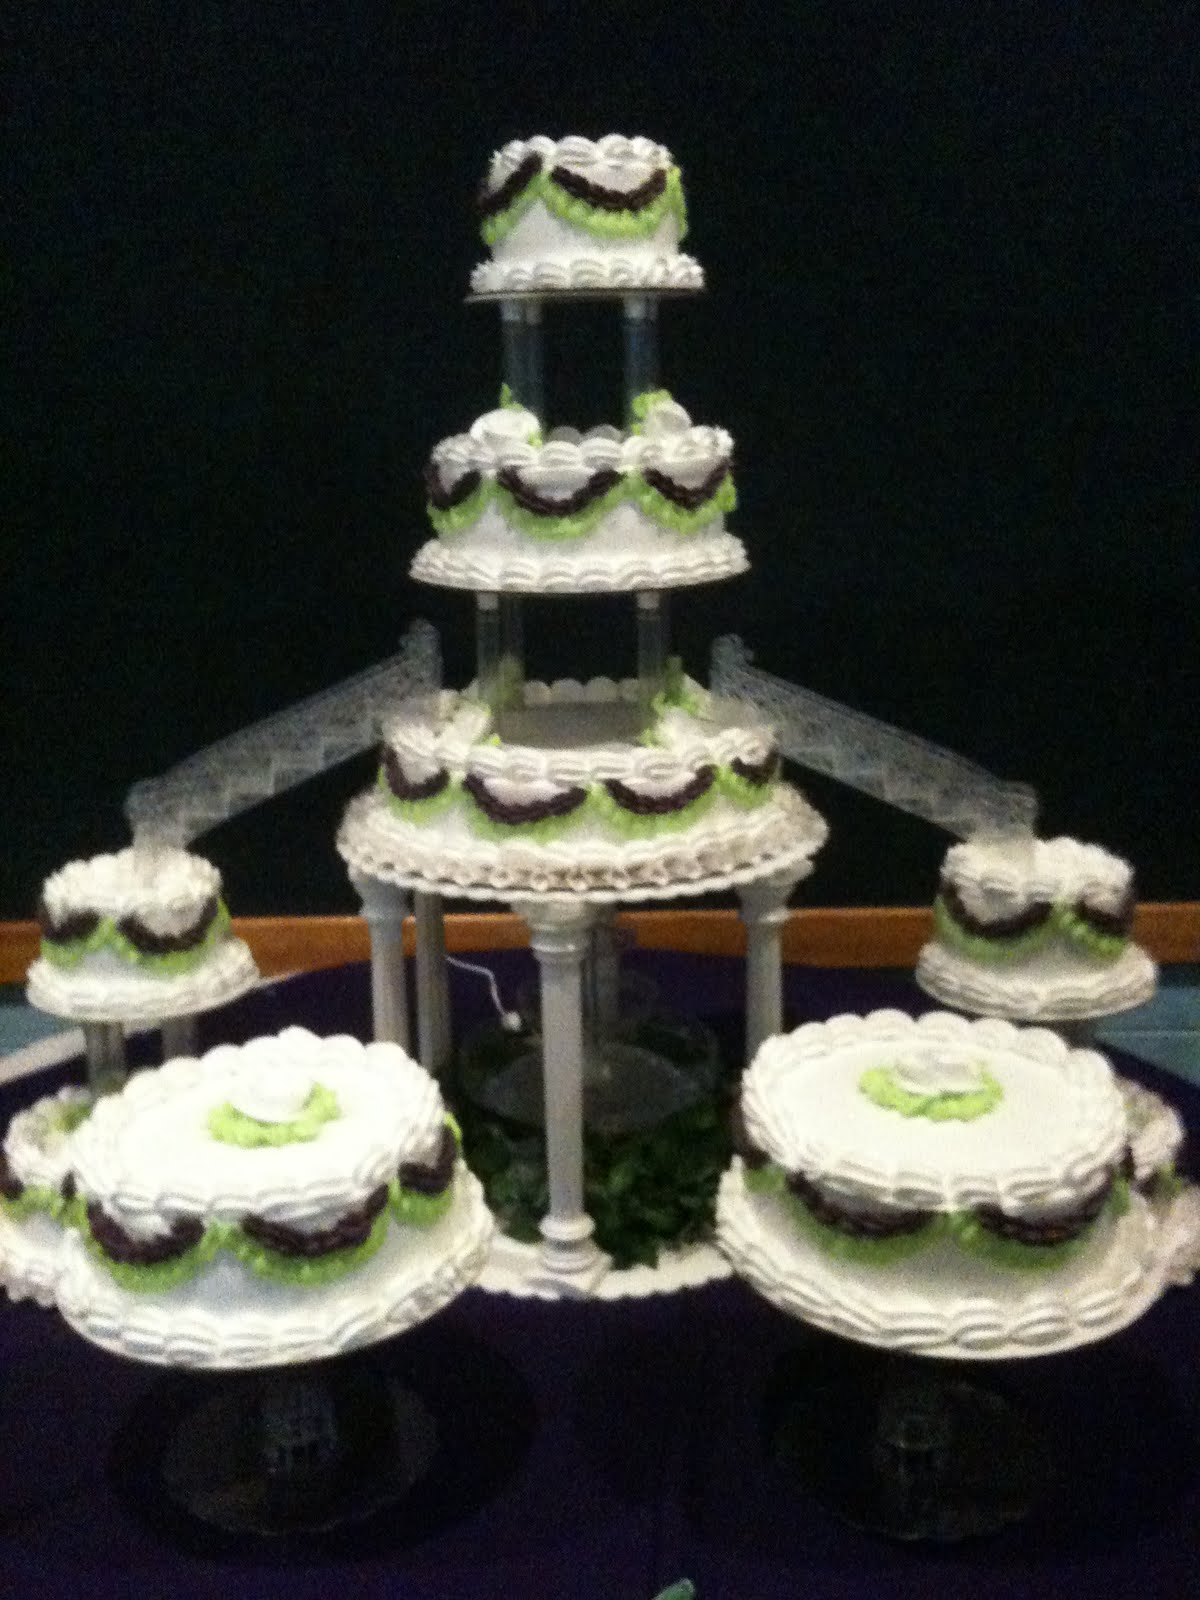 Hector S Custom Cakes 9 Tiered Cake With Stairs